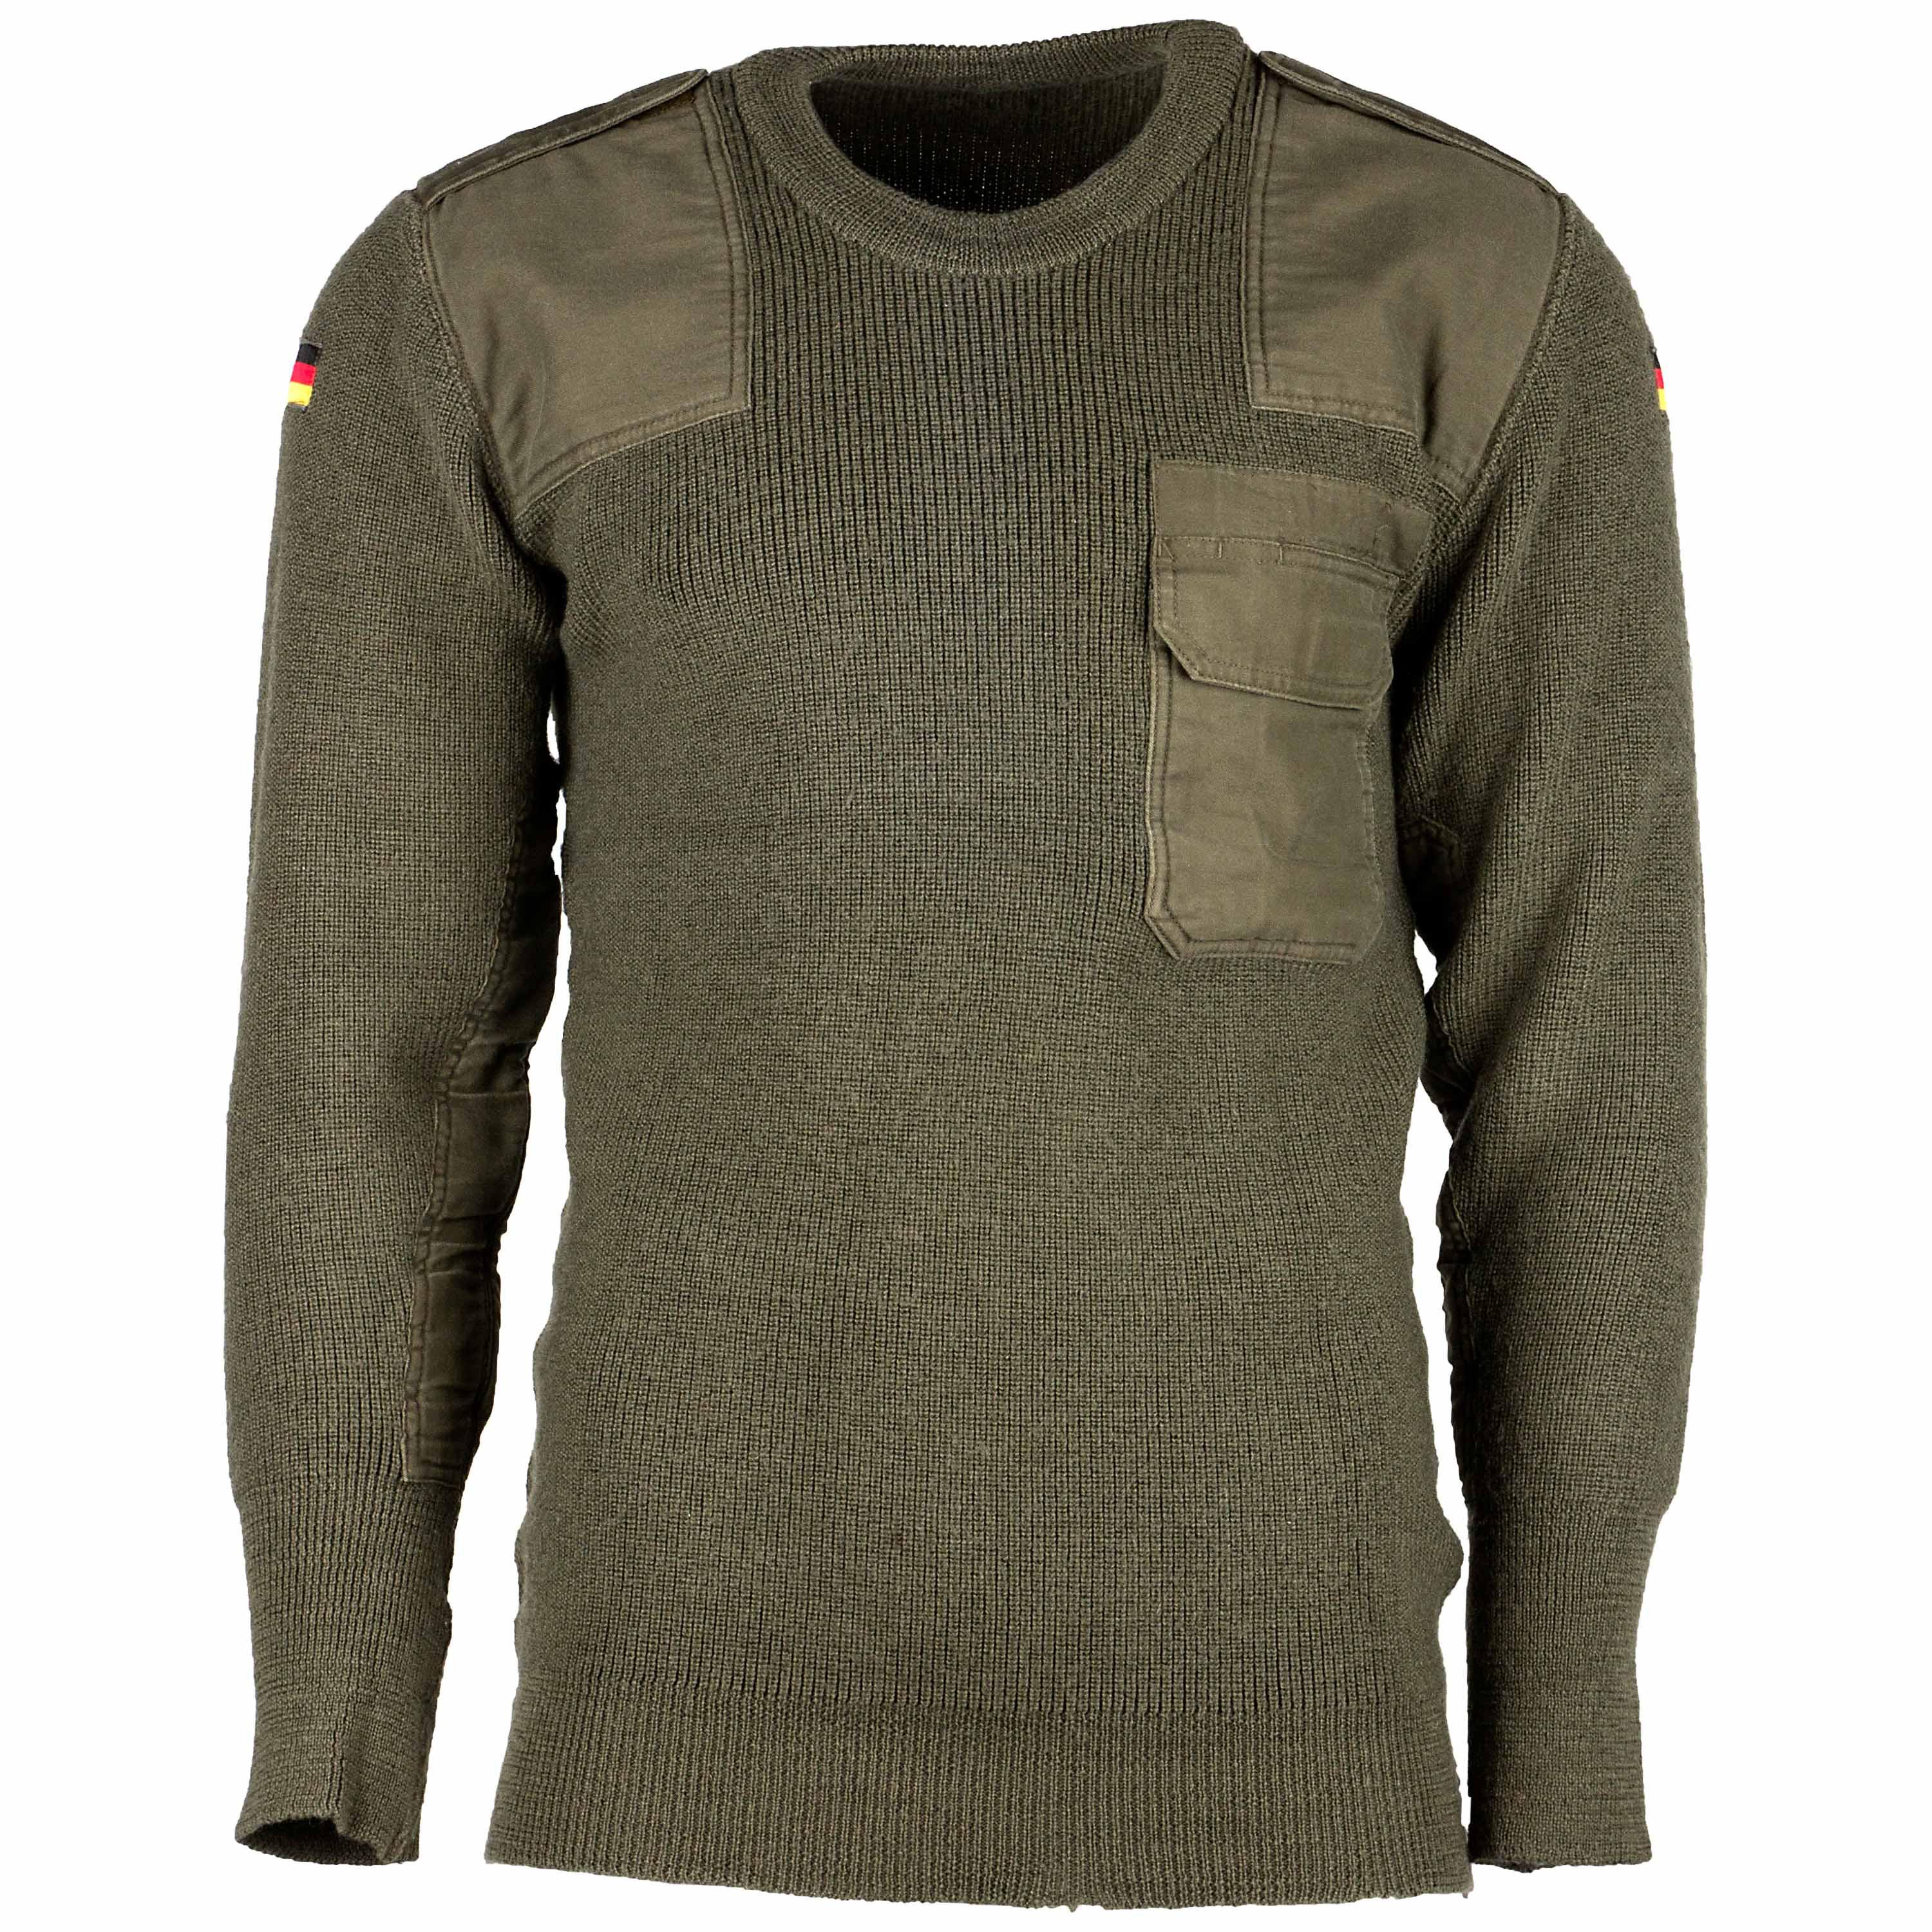 German Army Sweater Used olive